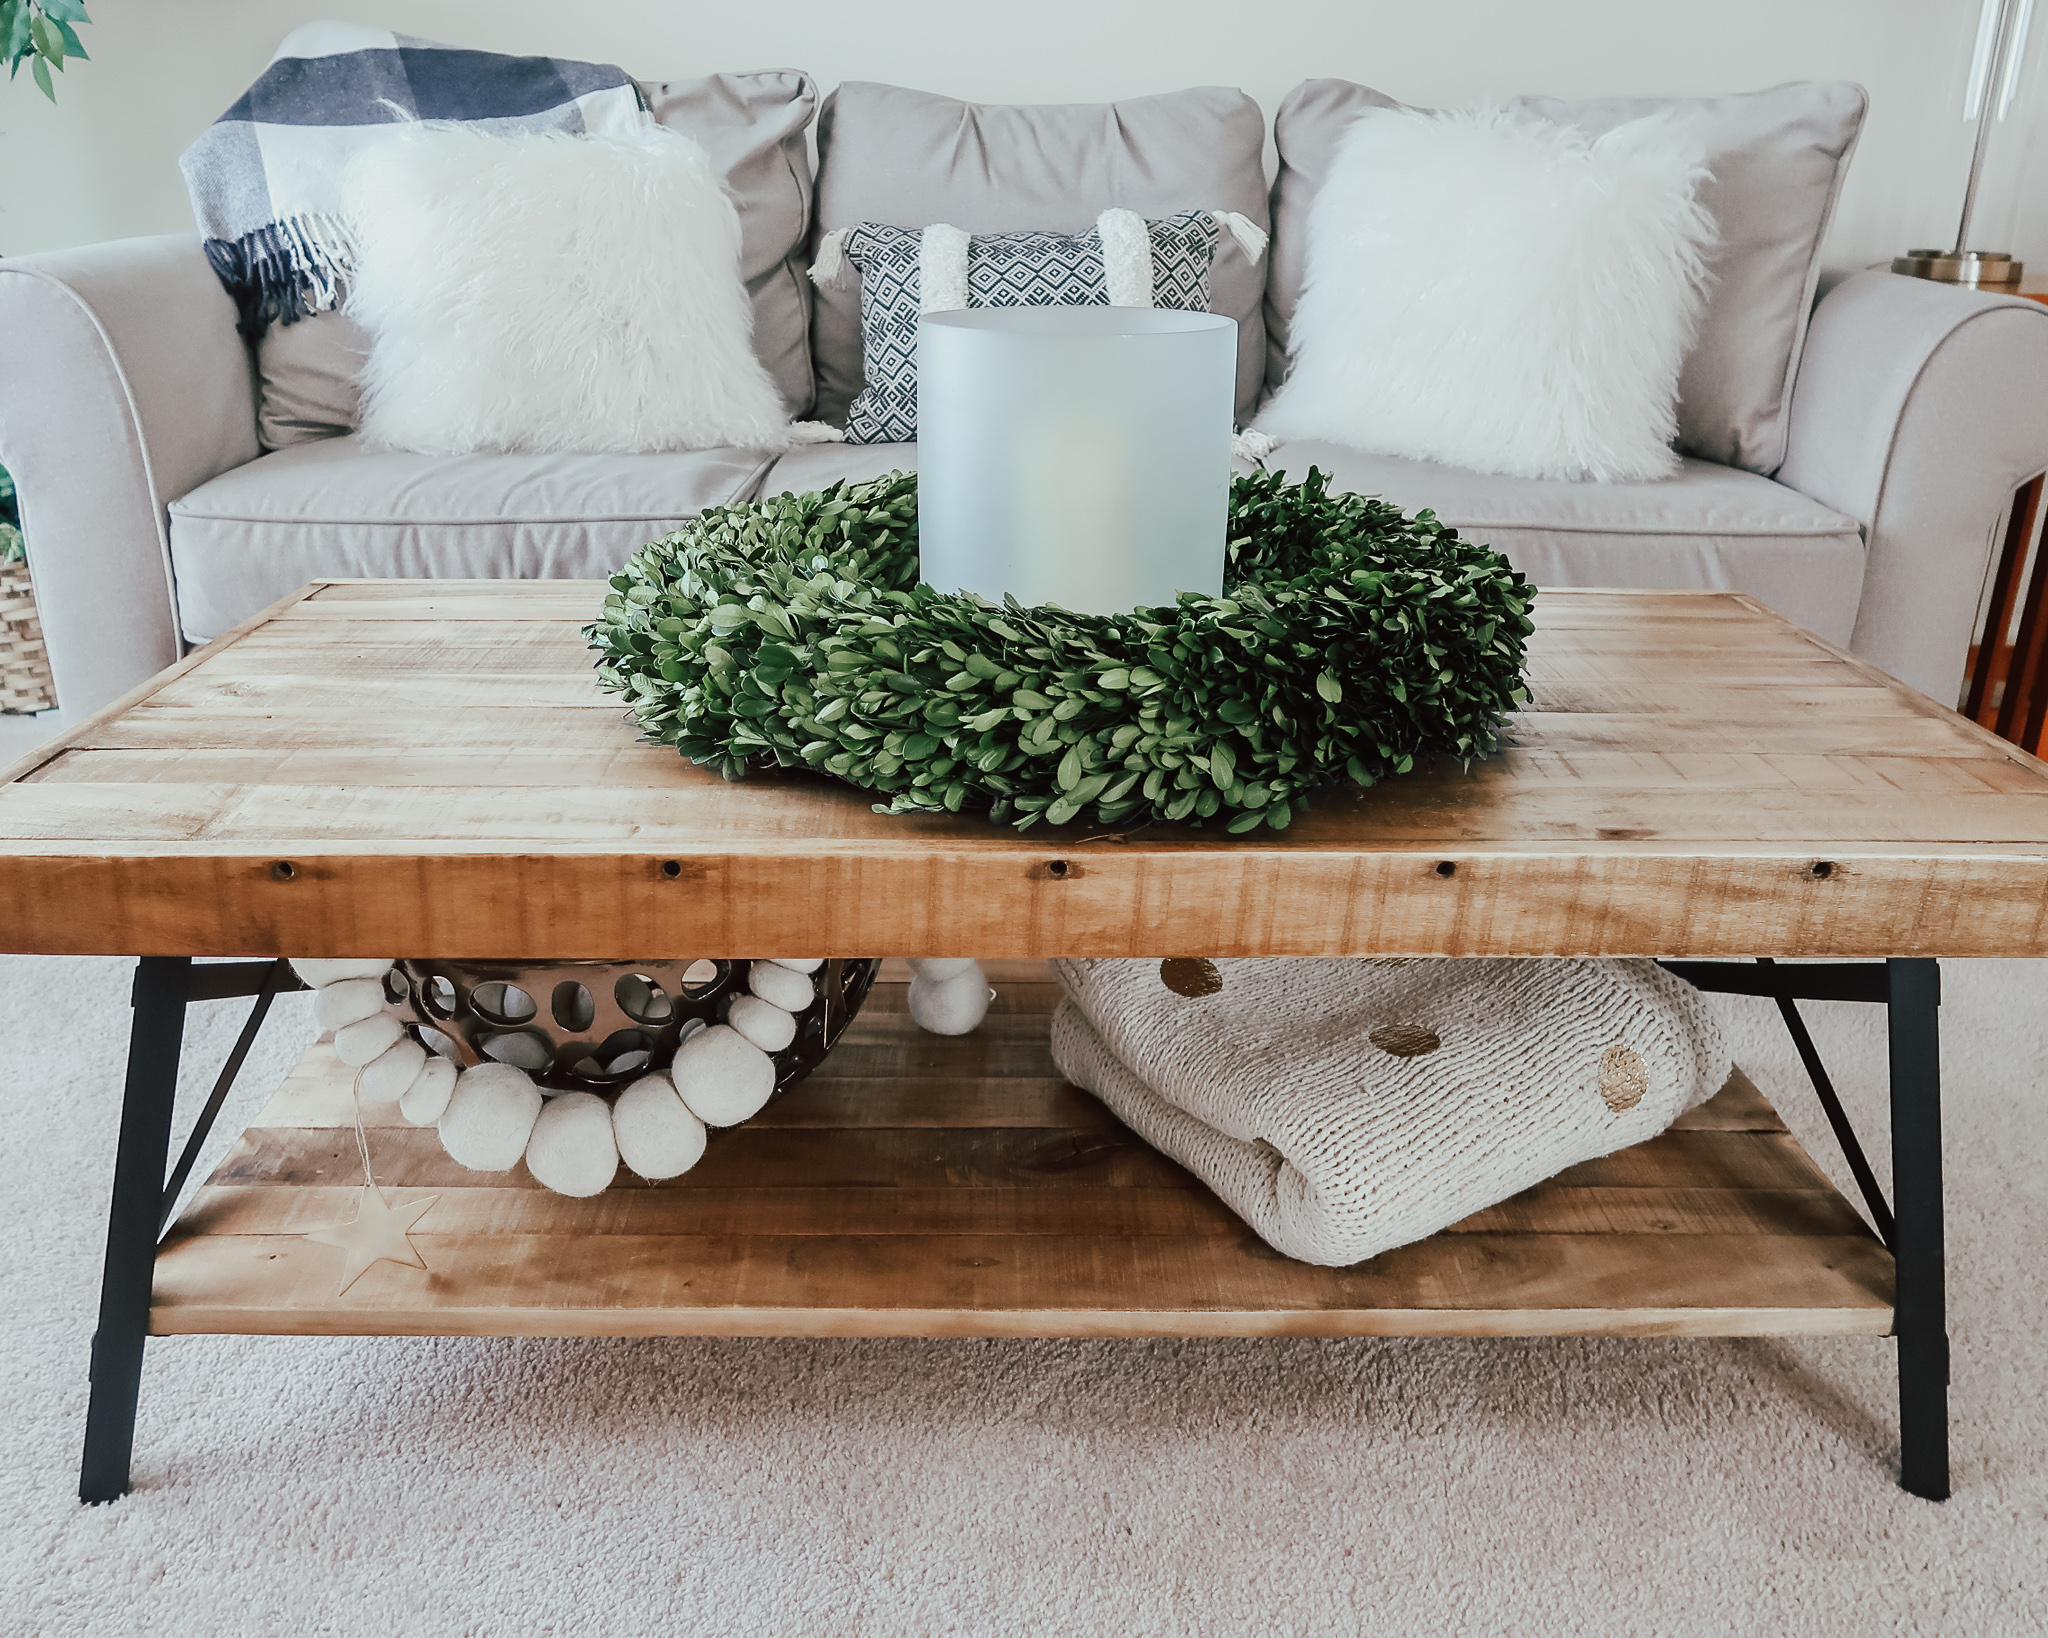 5-ways-to-cozy-your-home-holiday-decor-5.jpg